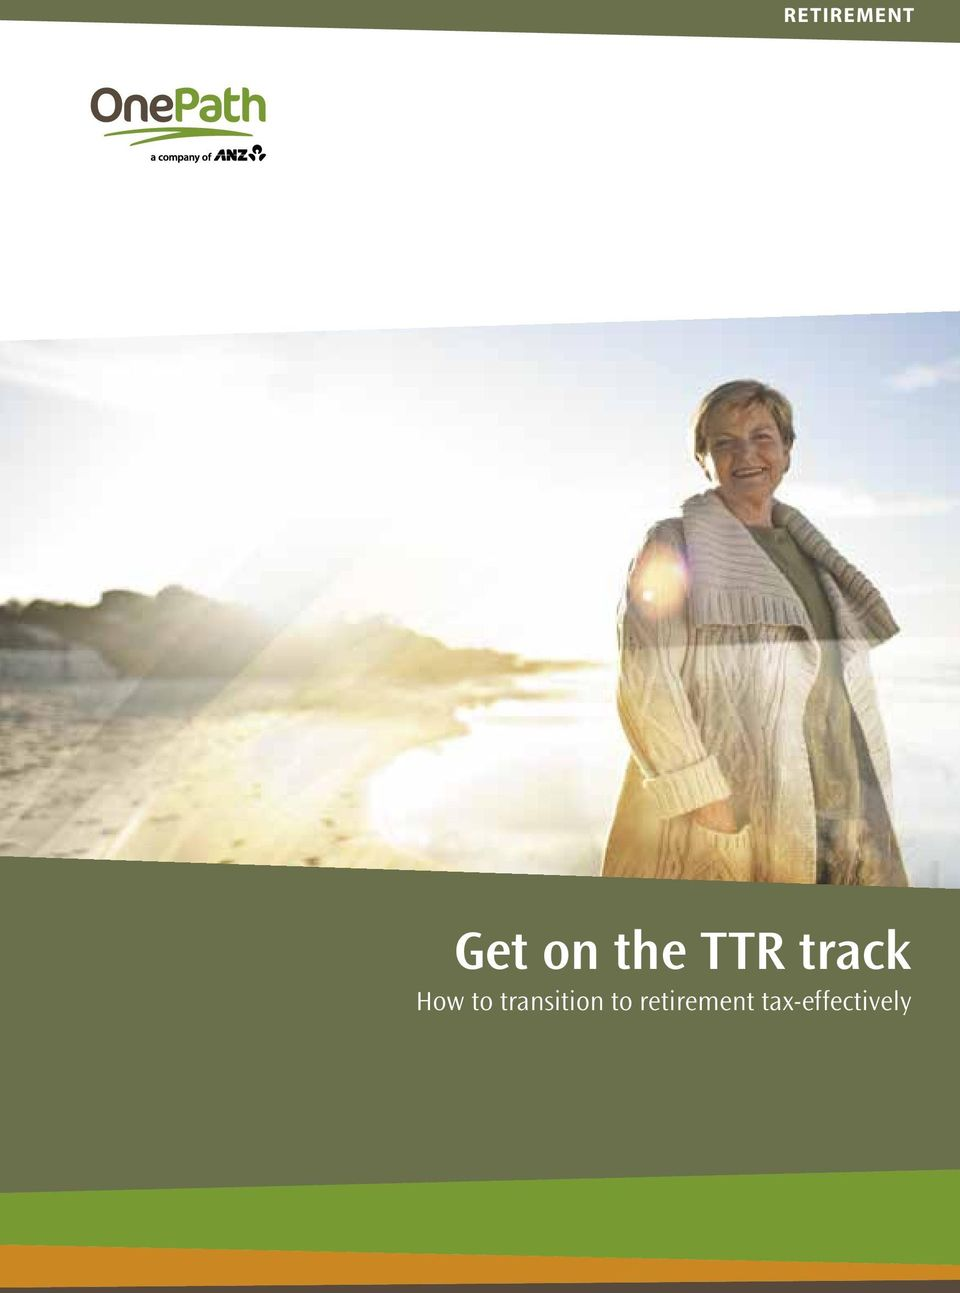 TTR track How to